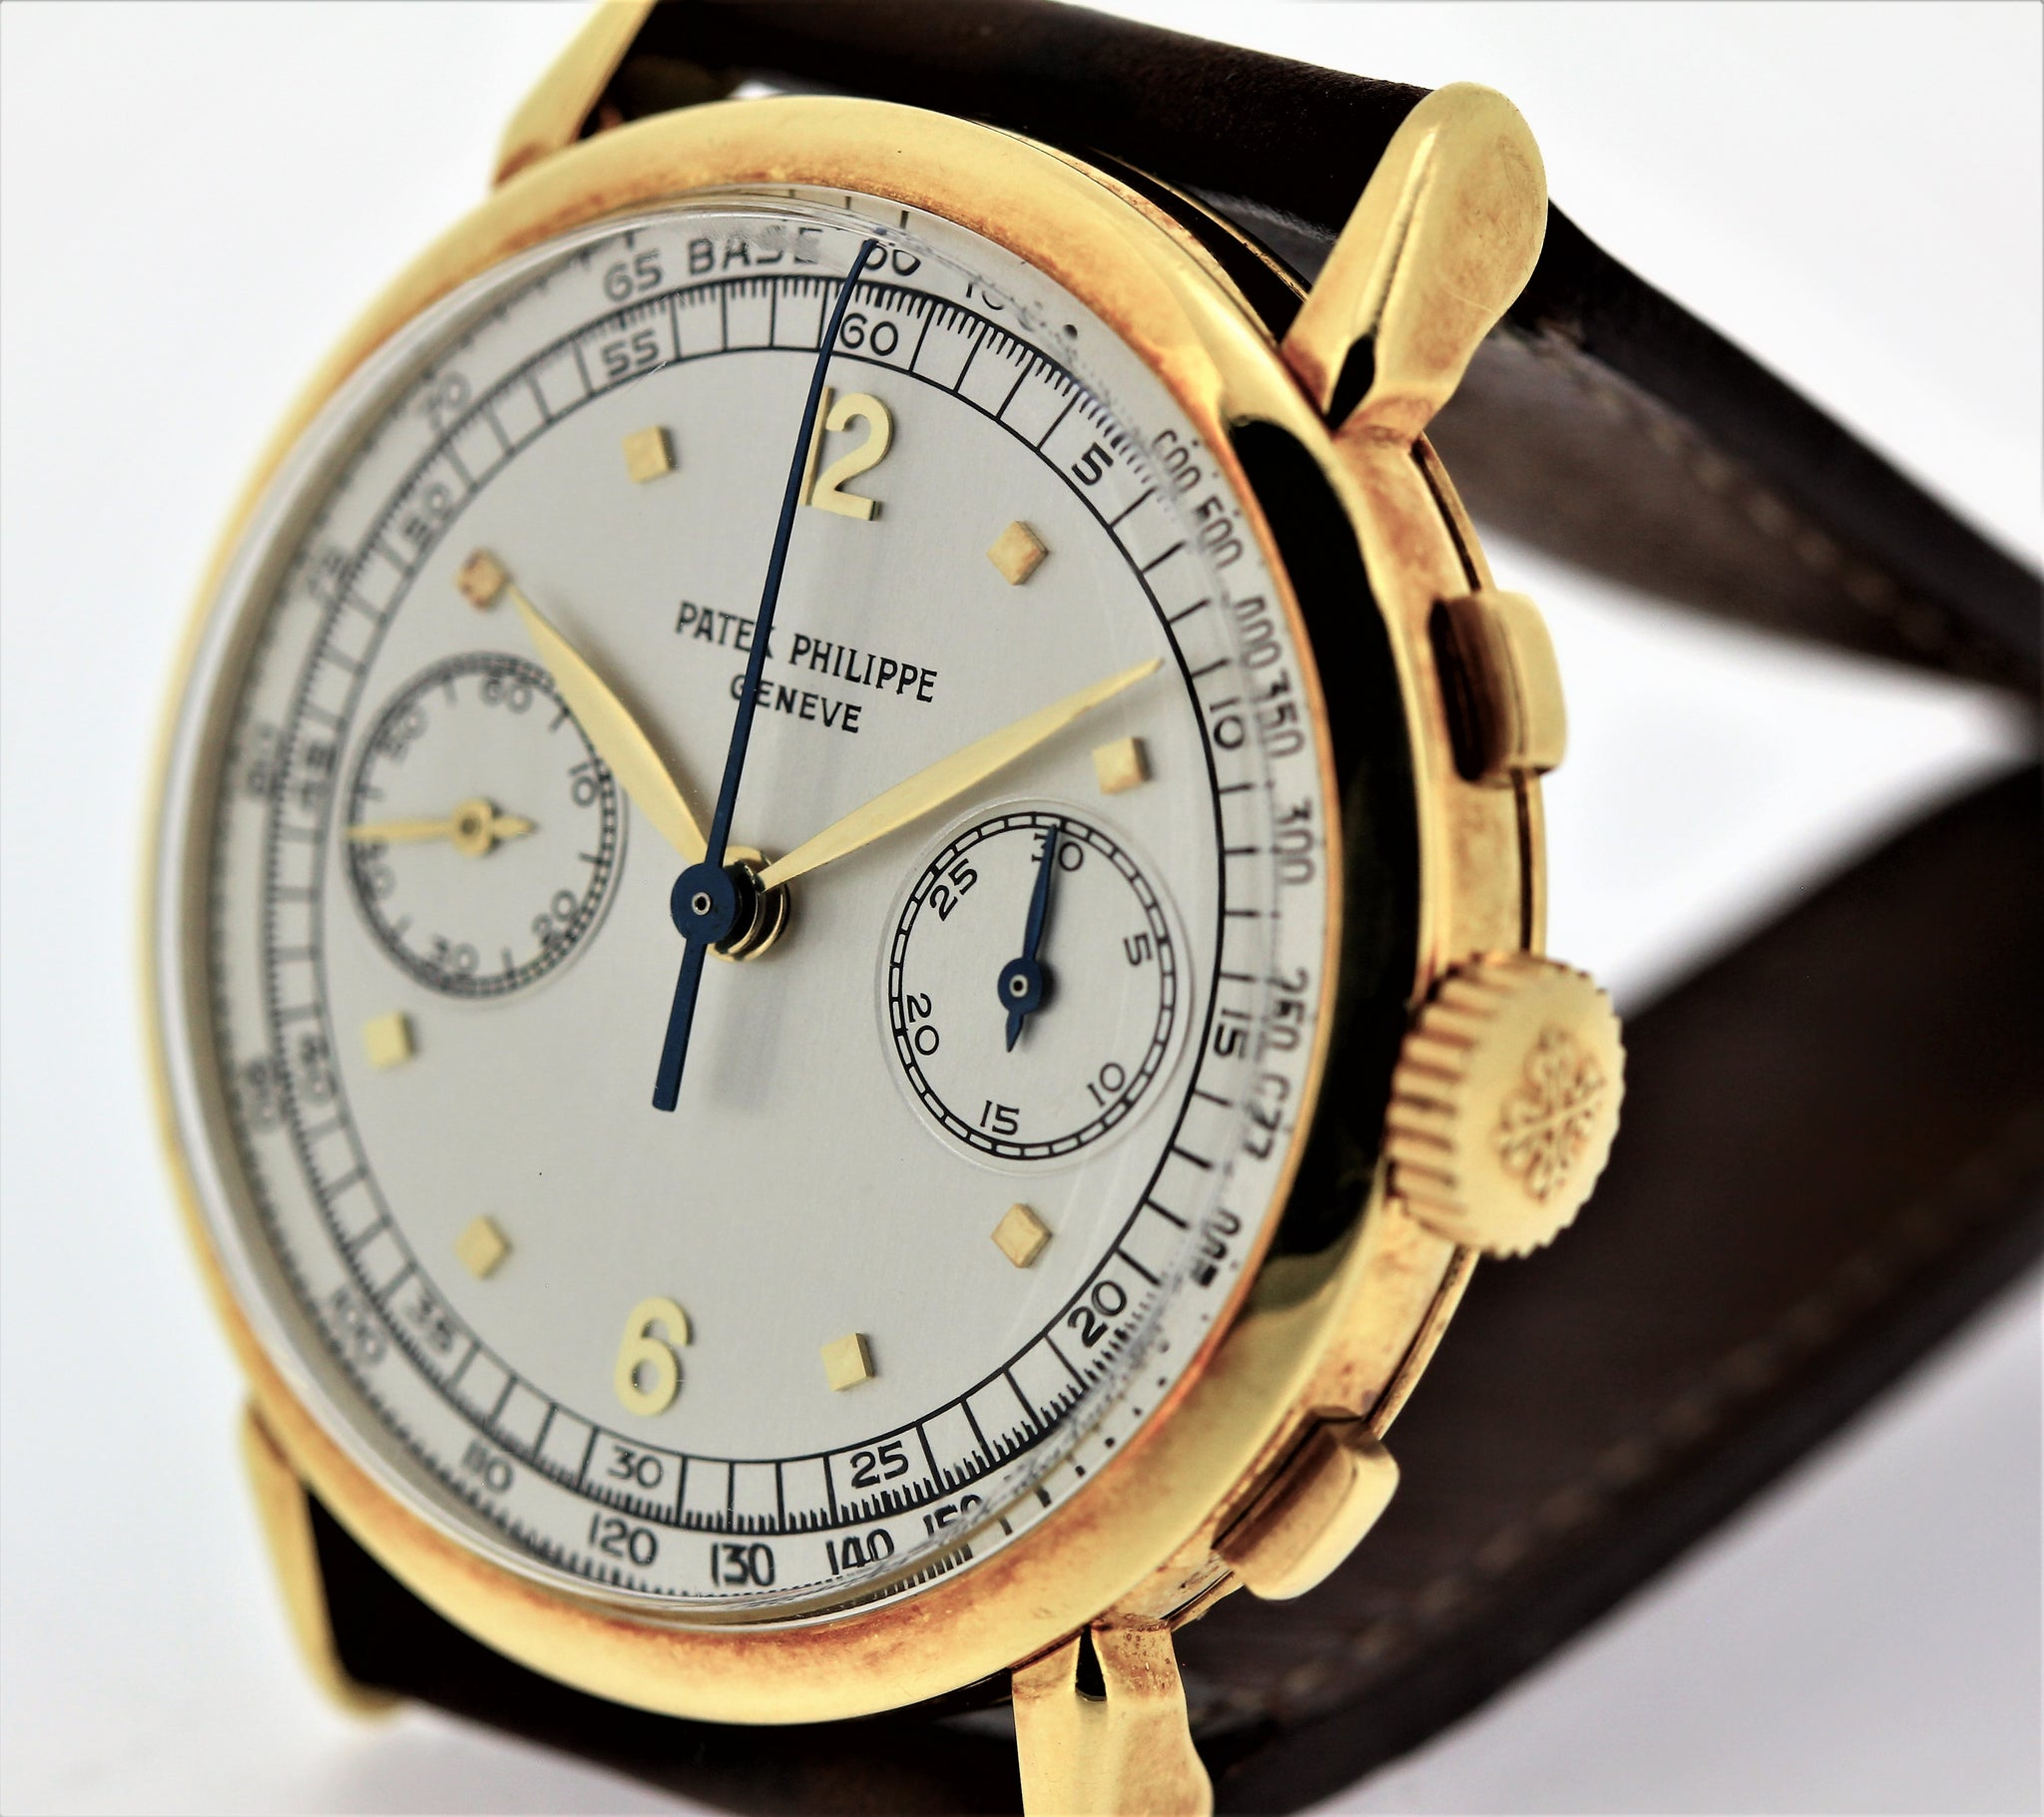 Patek Philippe 1579J Chronograph Watch - Circa 1951